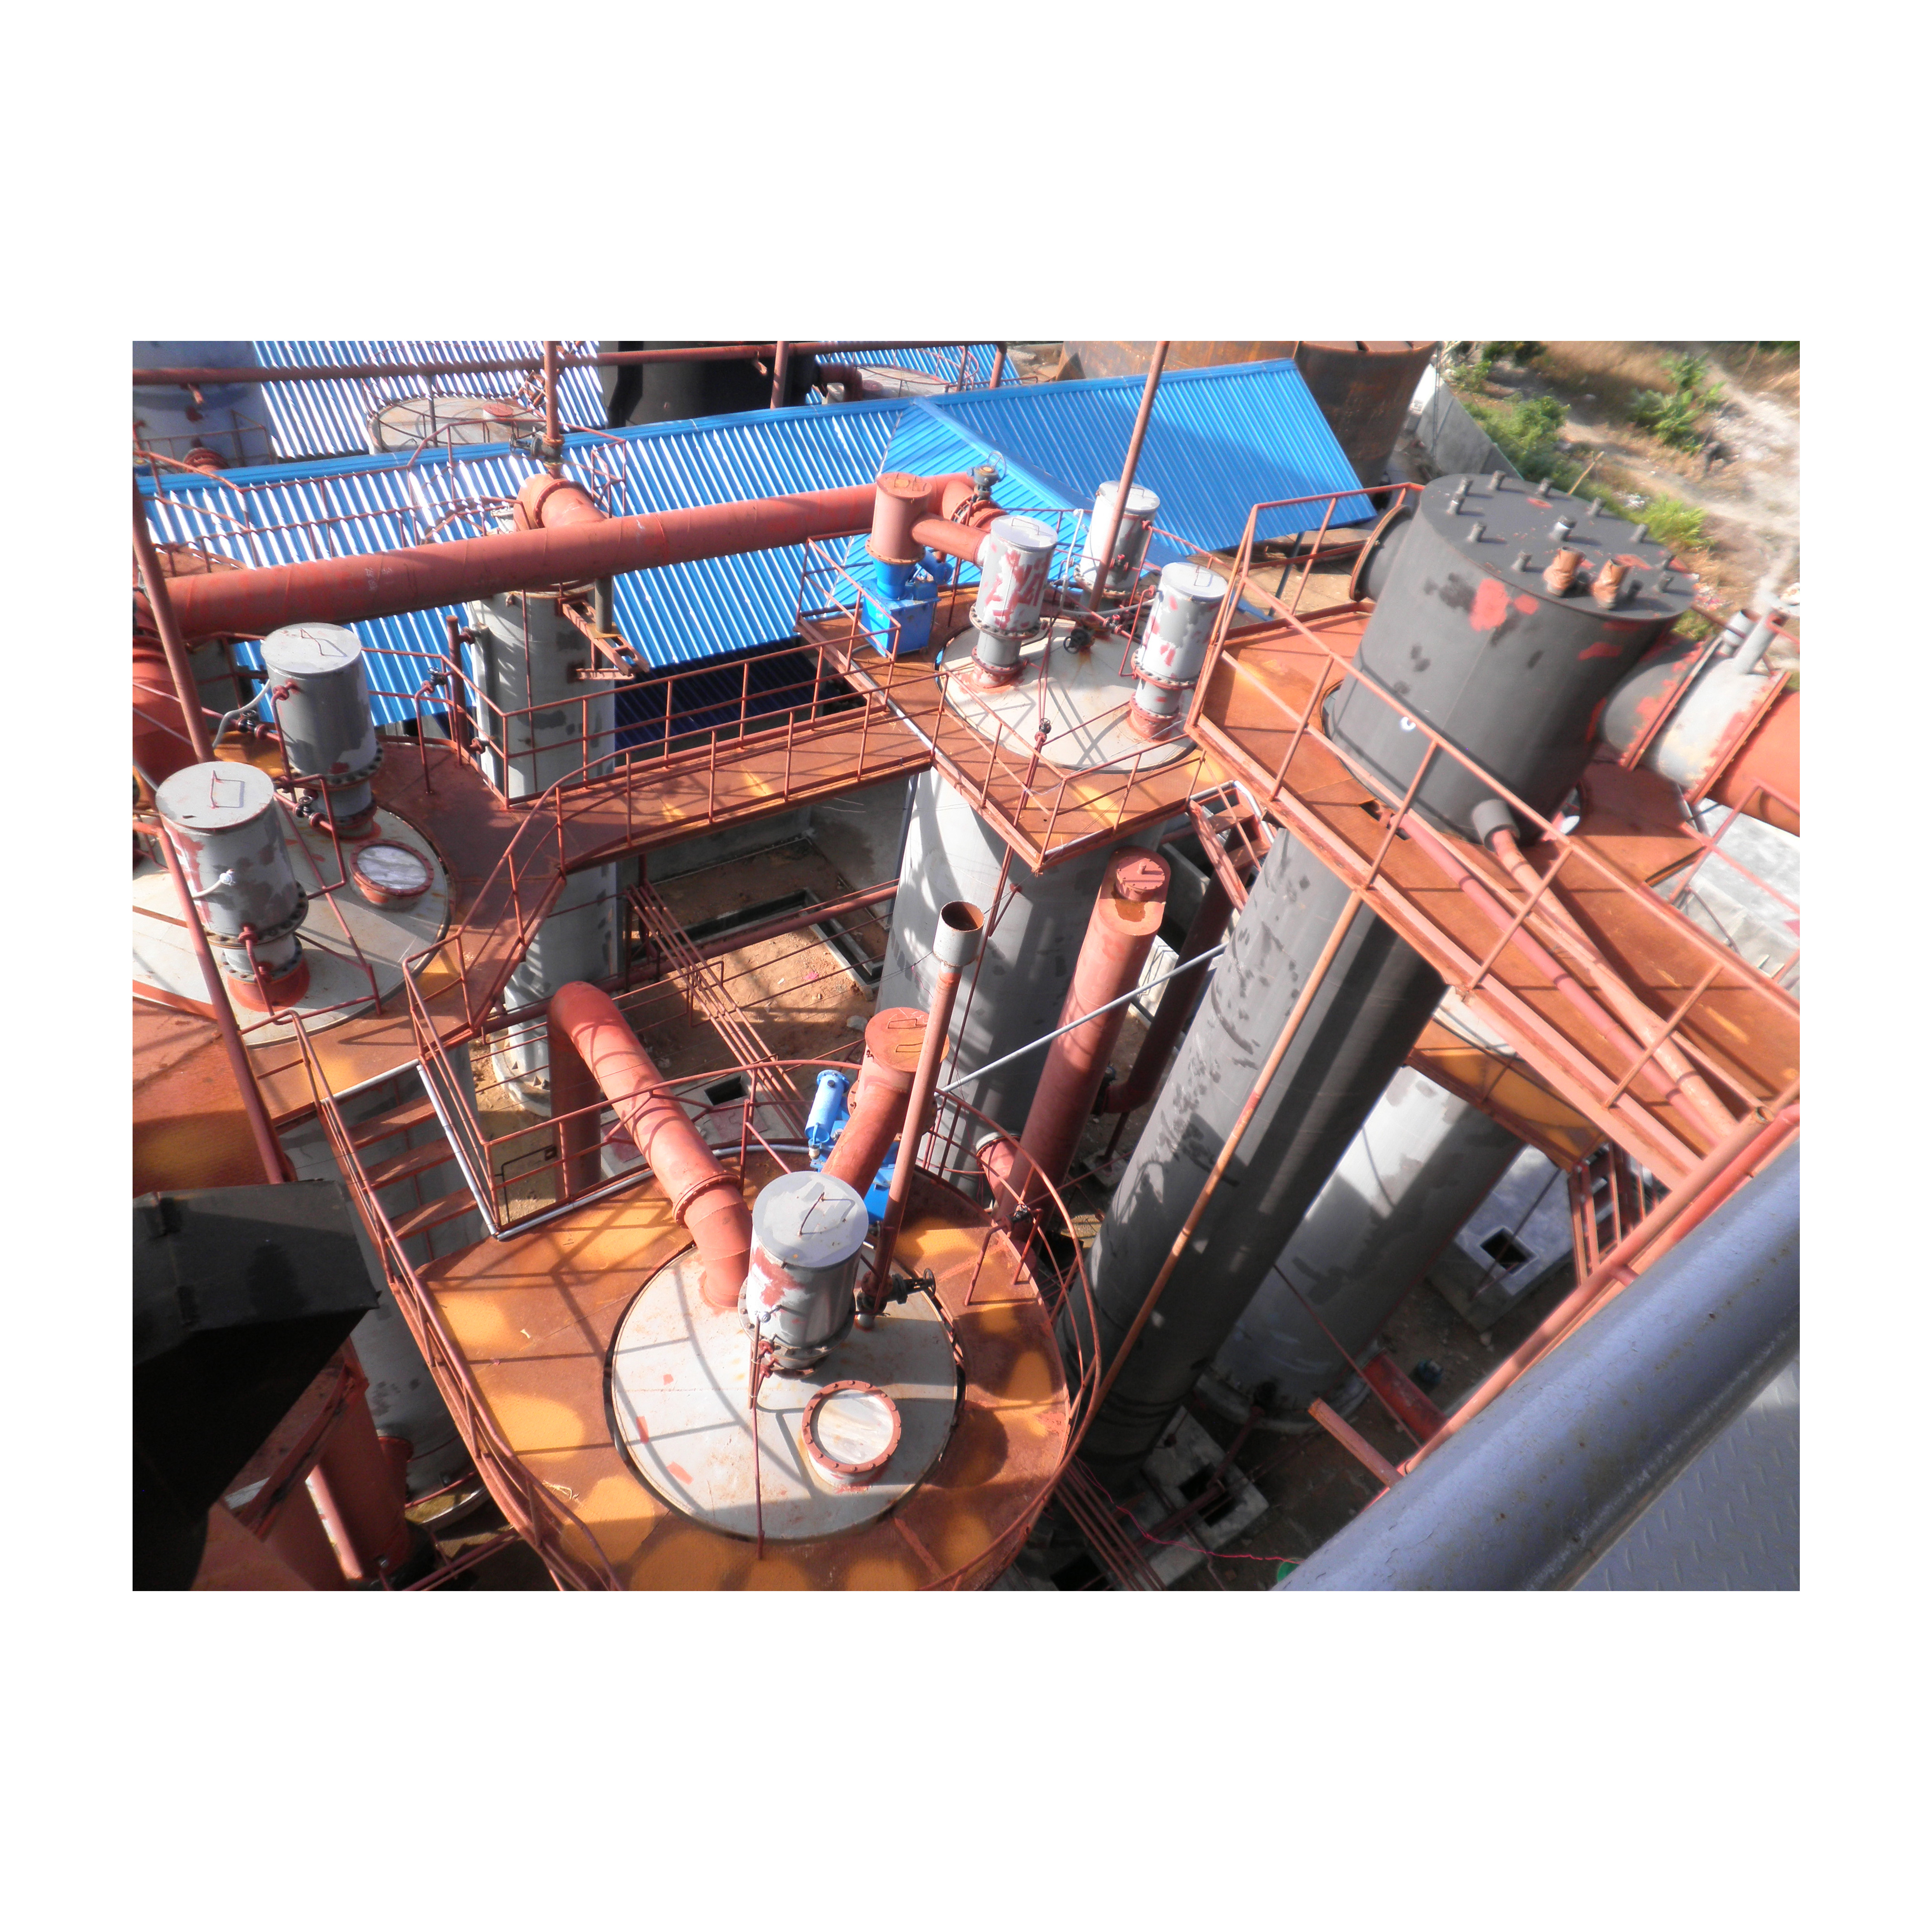 Coal Gas Power Plant by gasification technology